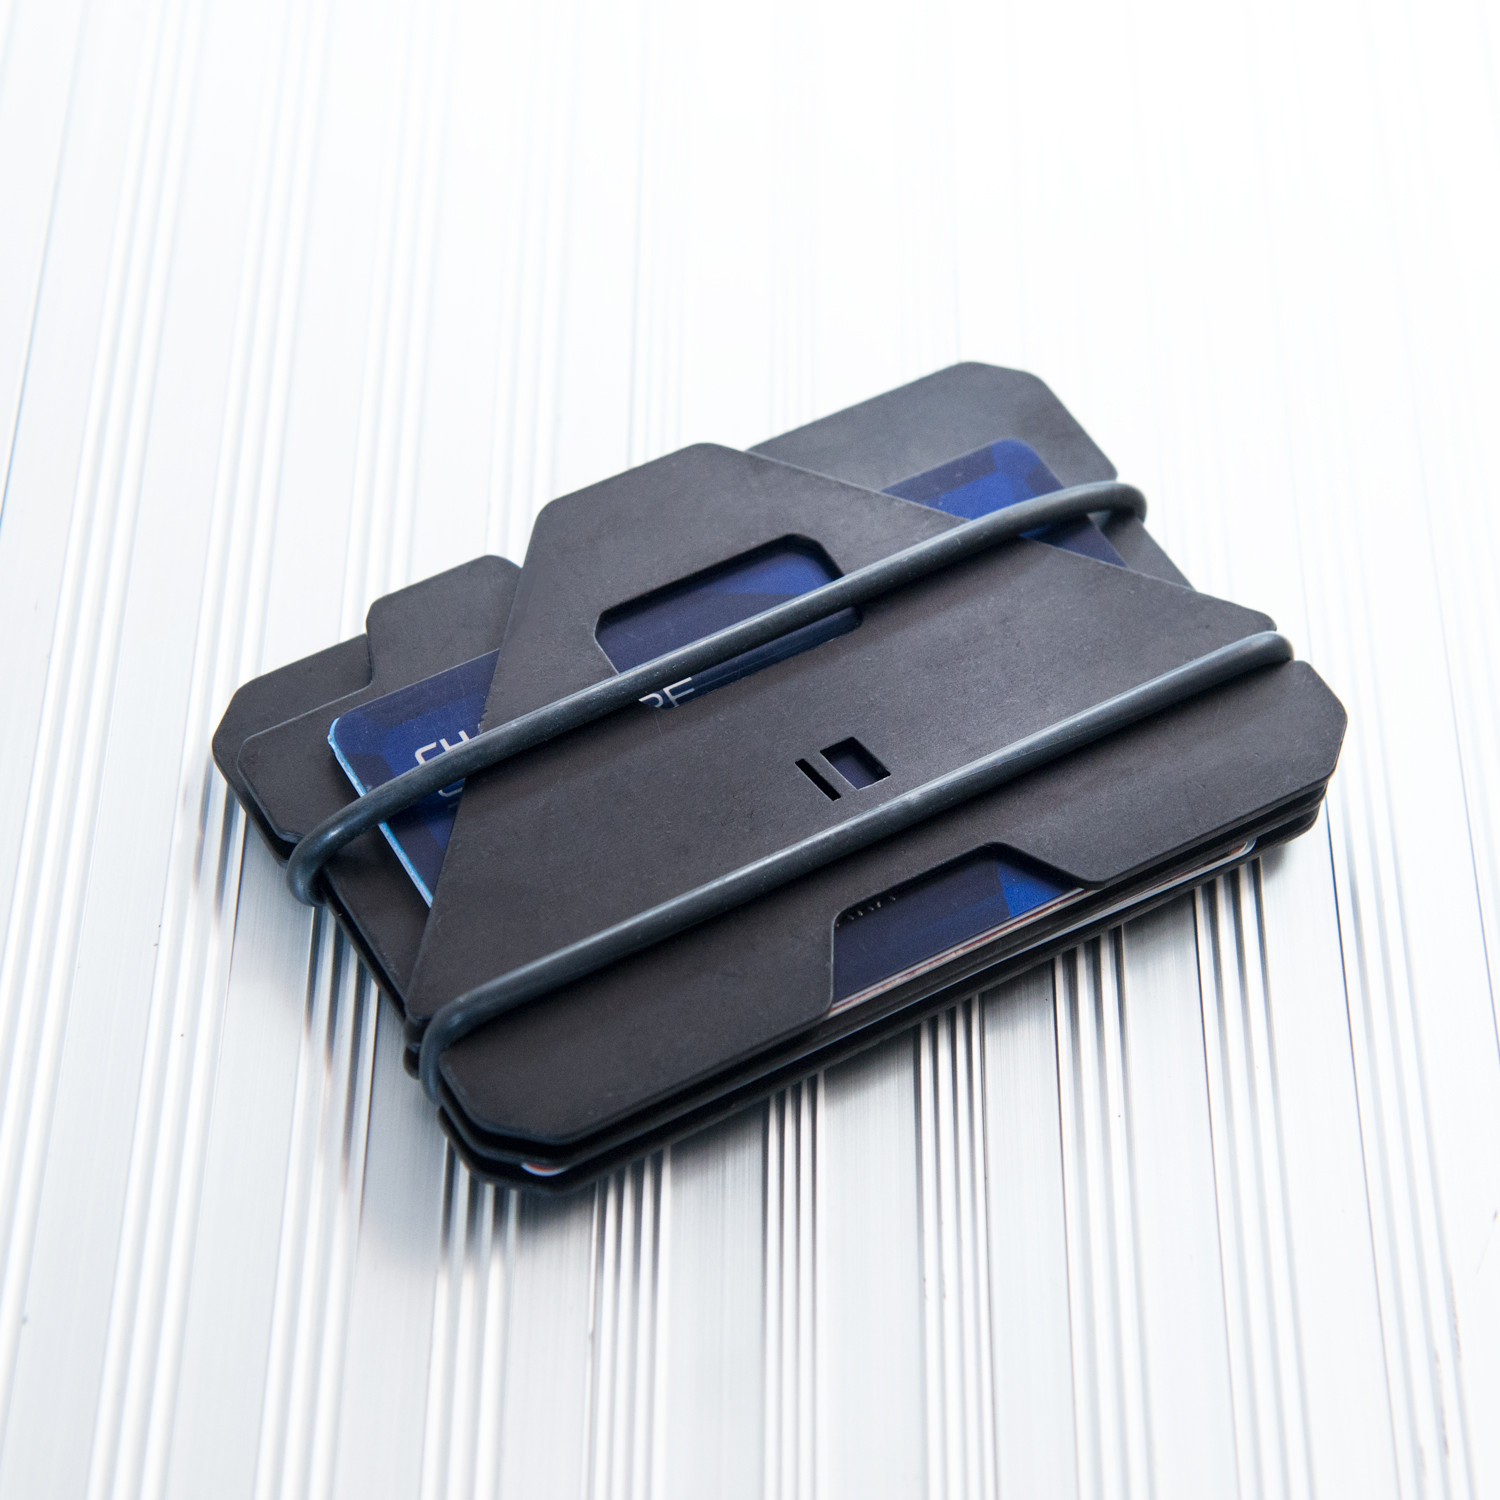 Touch Of Modern: A3 Aluminum Plate Wallet // Black Hardcoat Anodized